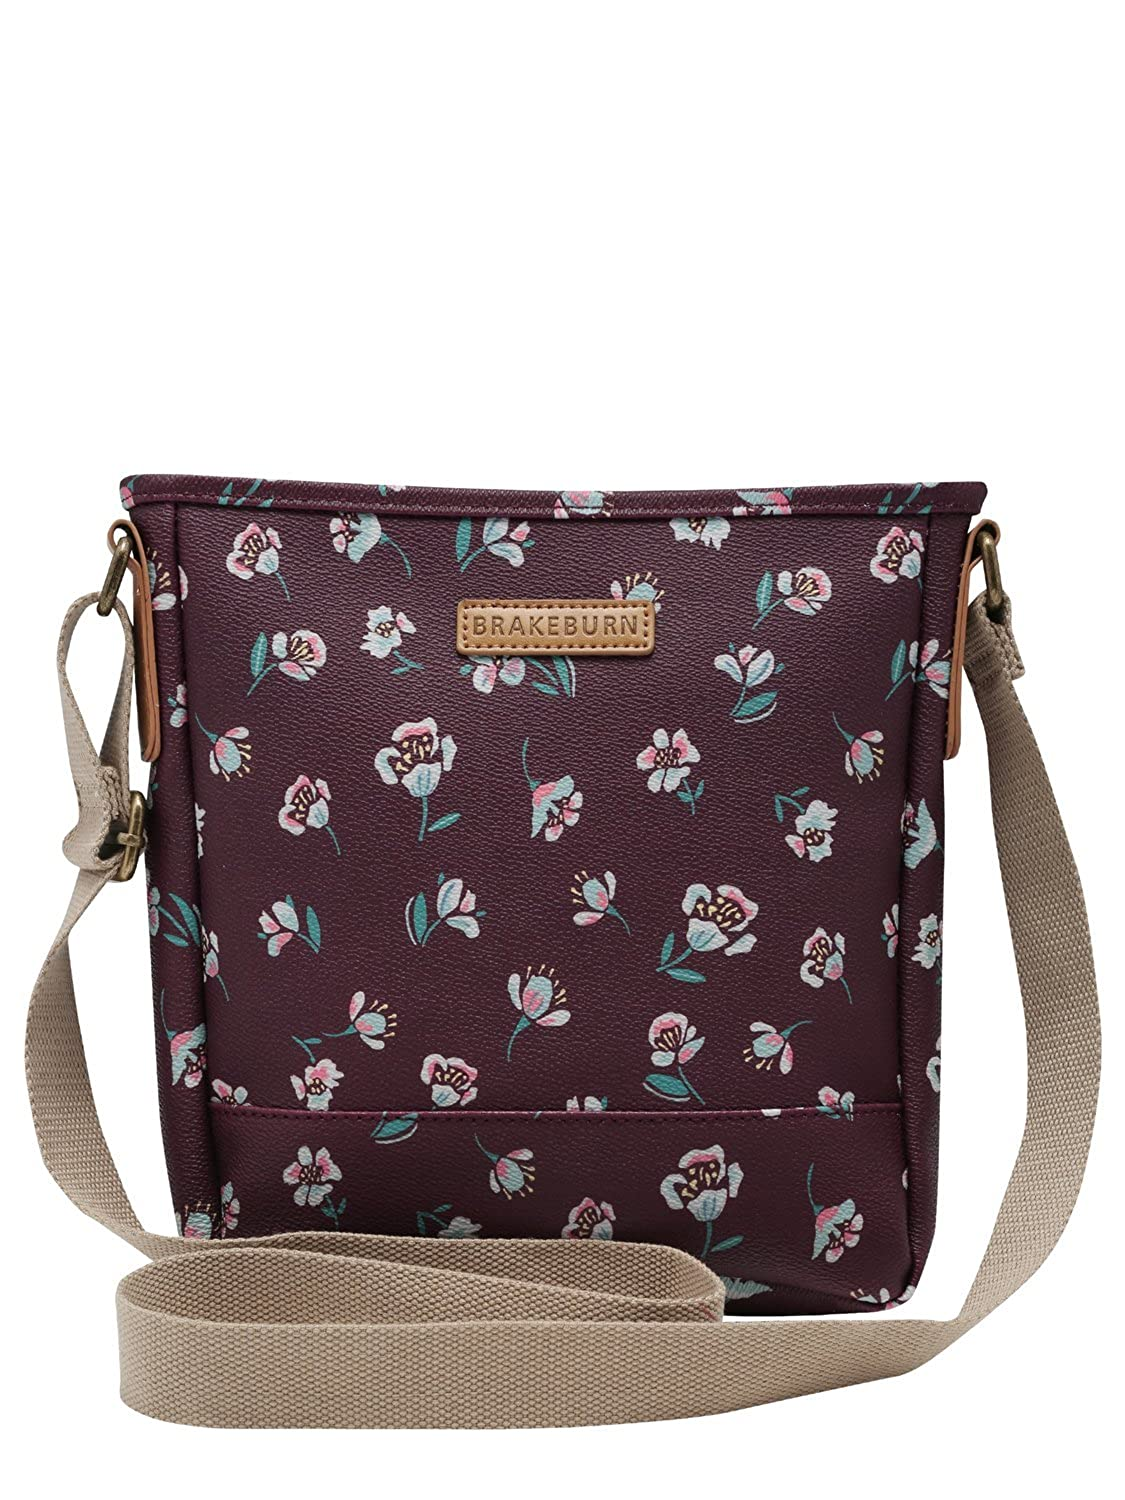 Brakeburn Ladies Cotton Blend Floral Print Adjustable Cross Body Bag